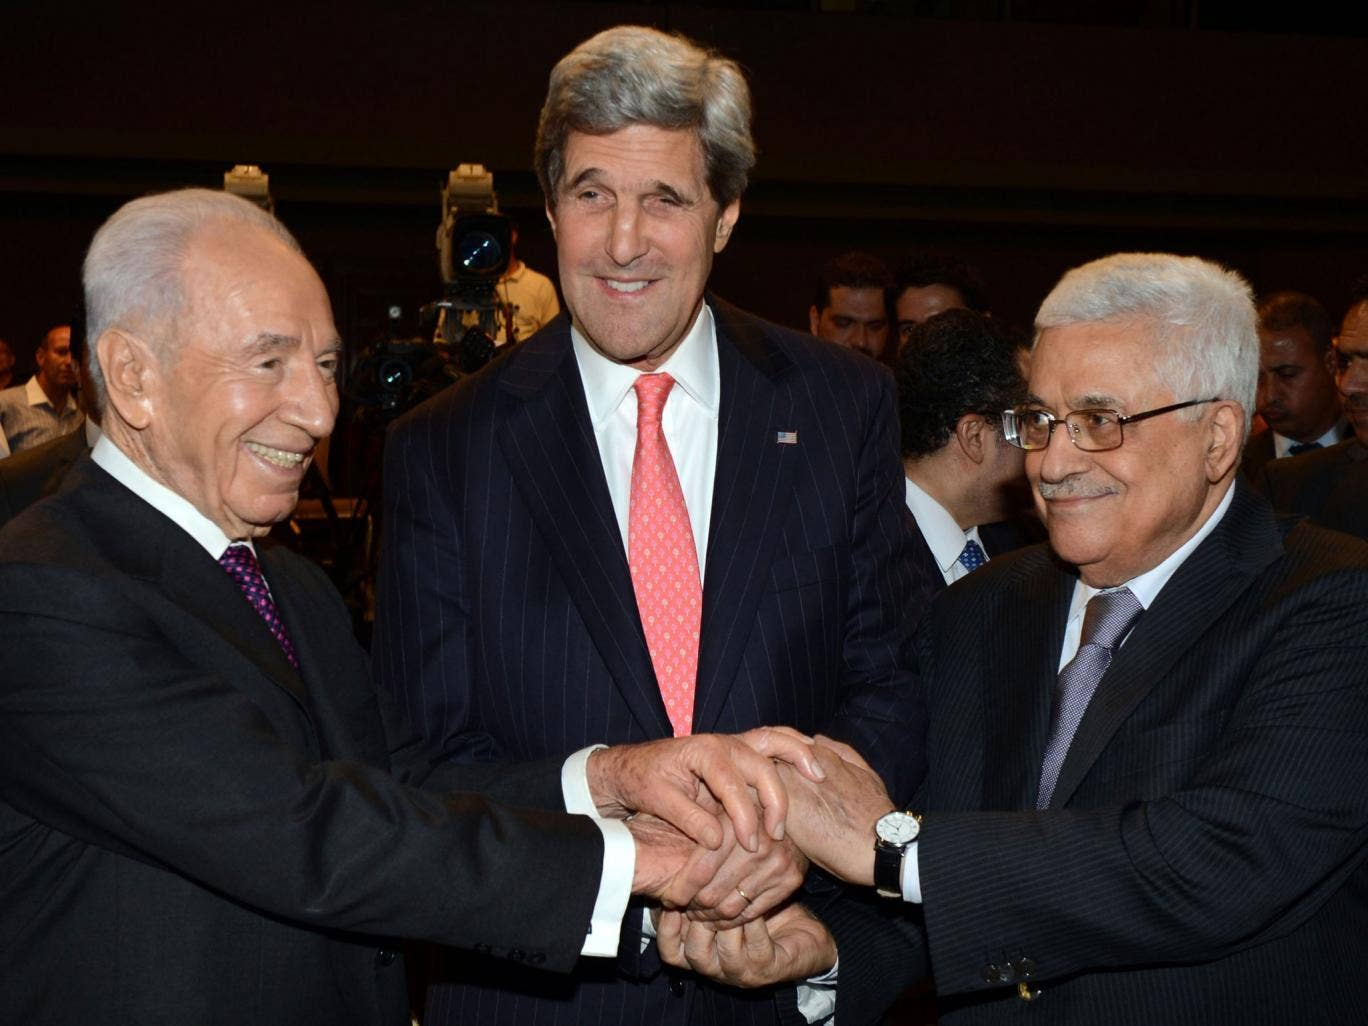 Mahmoud Abbas and Peres who posed for a three-way handshake with US Secretary of State John Kerry